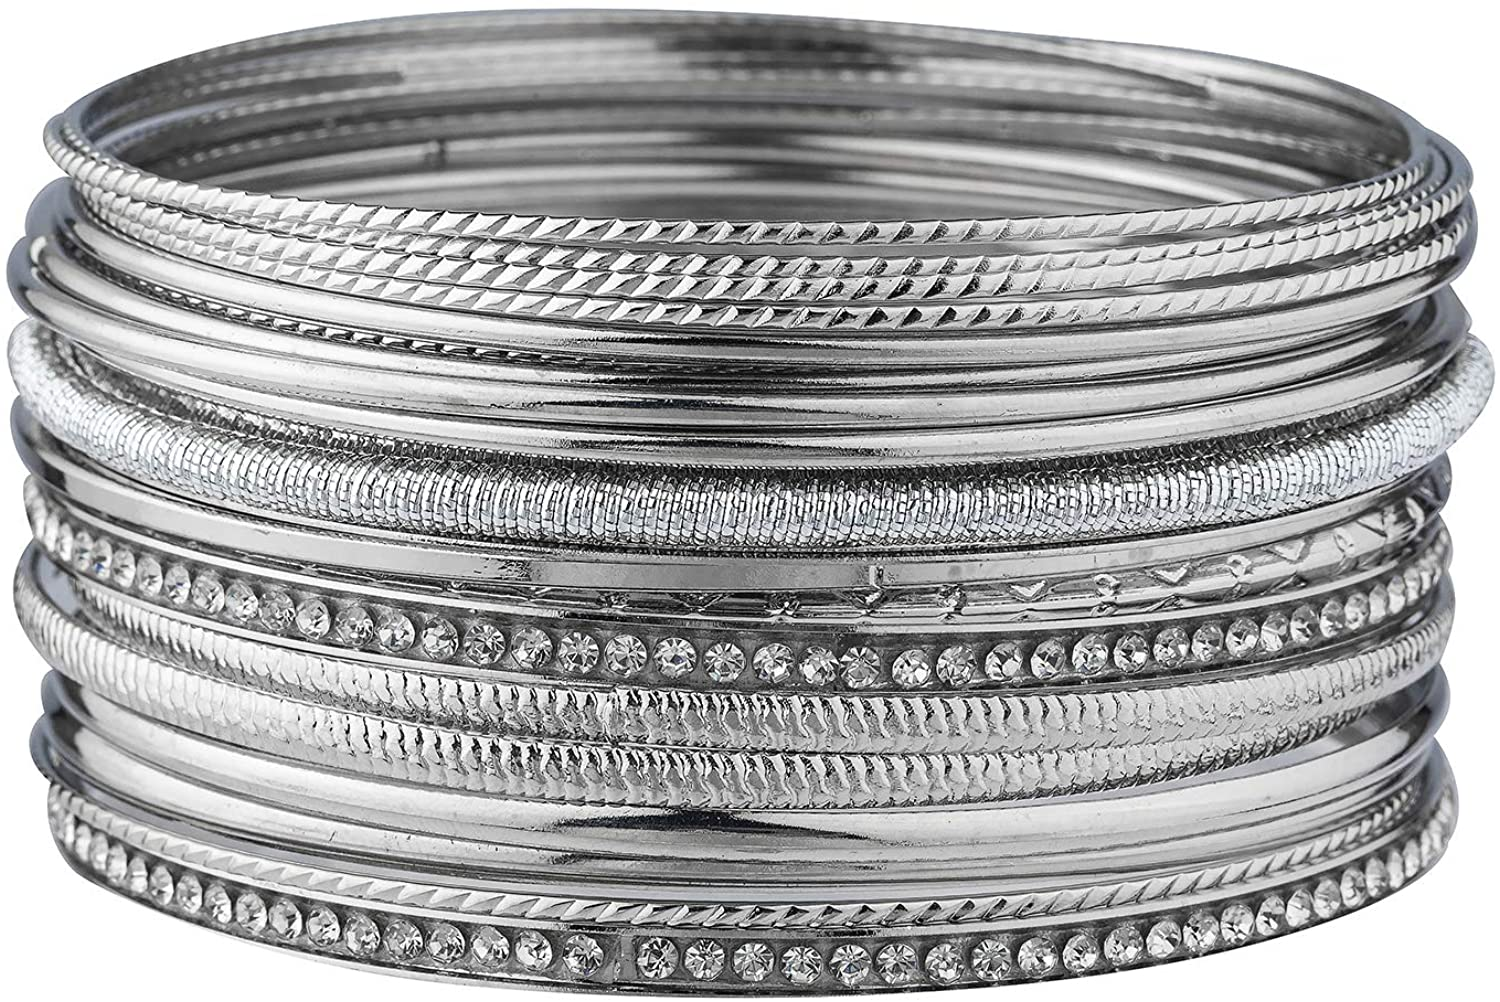 Lux Accessories Set of 20 Pieces Assorted Patterned Silvertone Bangle Fashion Bracelets